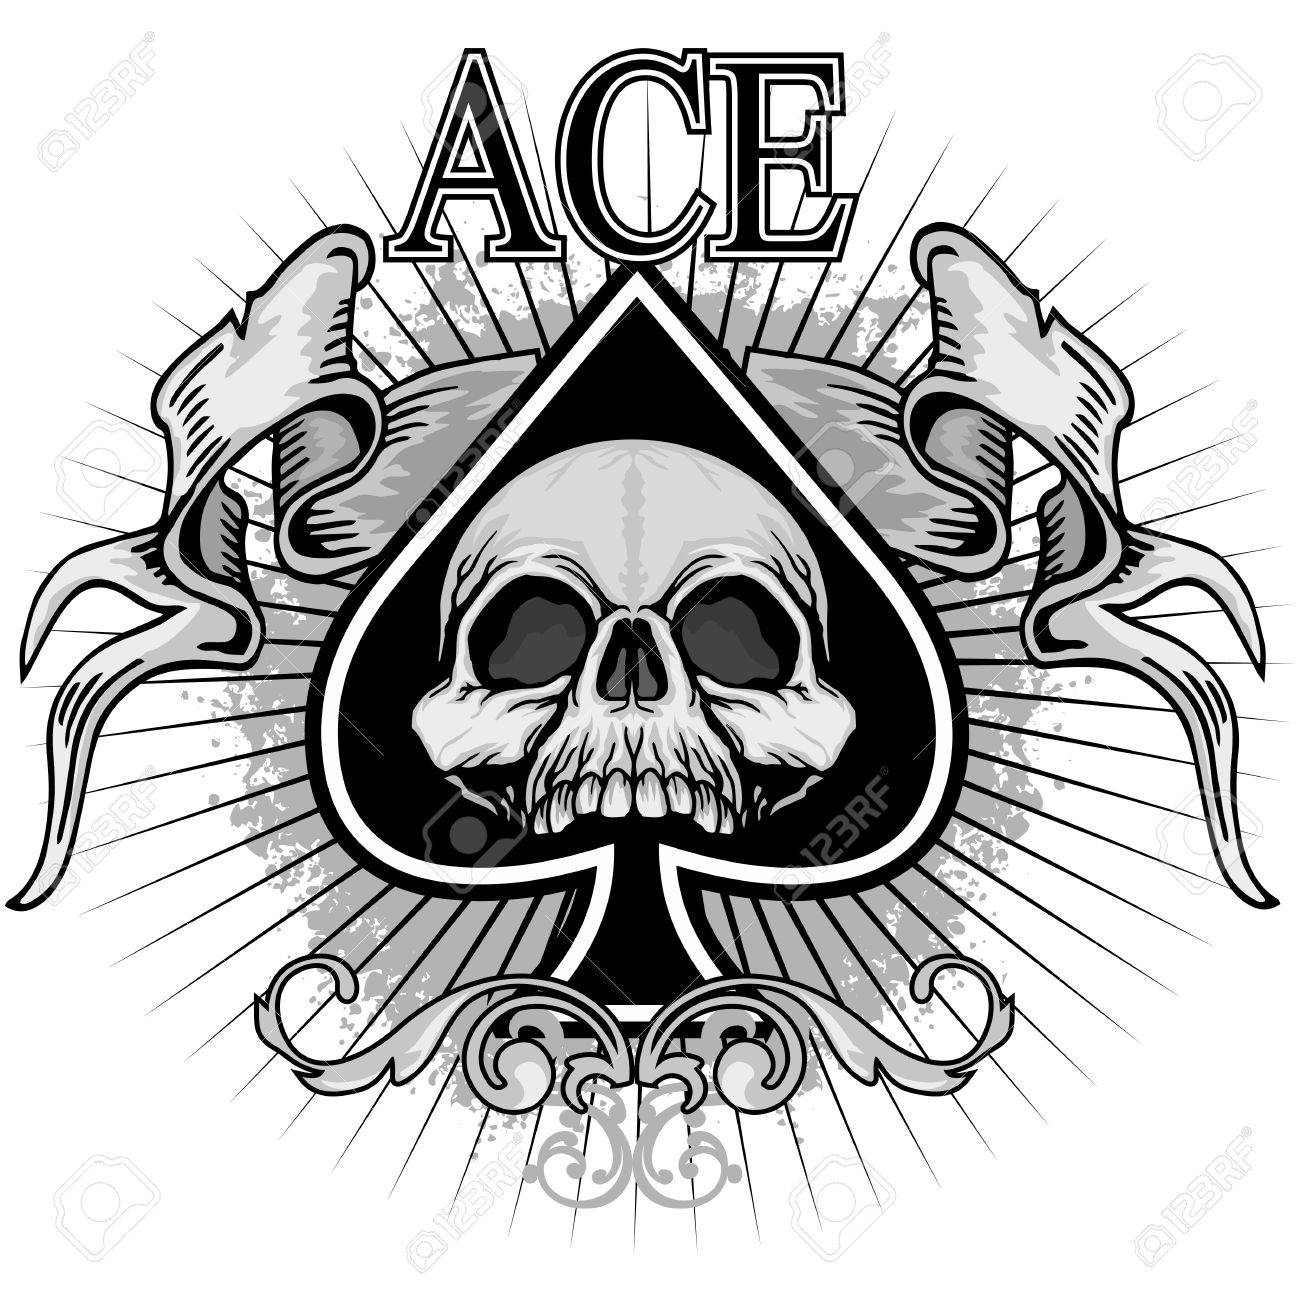 Ace of spades with skull royalty free cliparts vectors and stock ace of spades with skull stock vector 68891908 biocorpaavc Choice Image